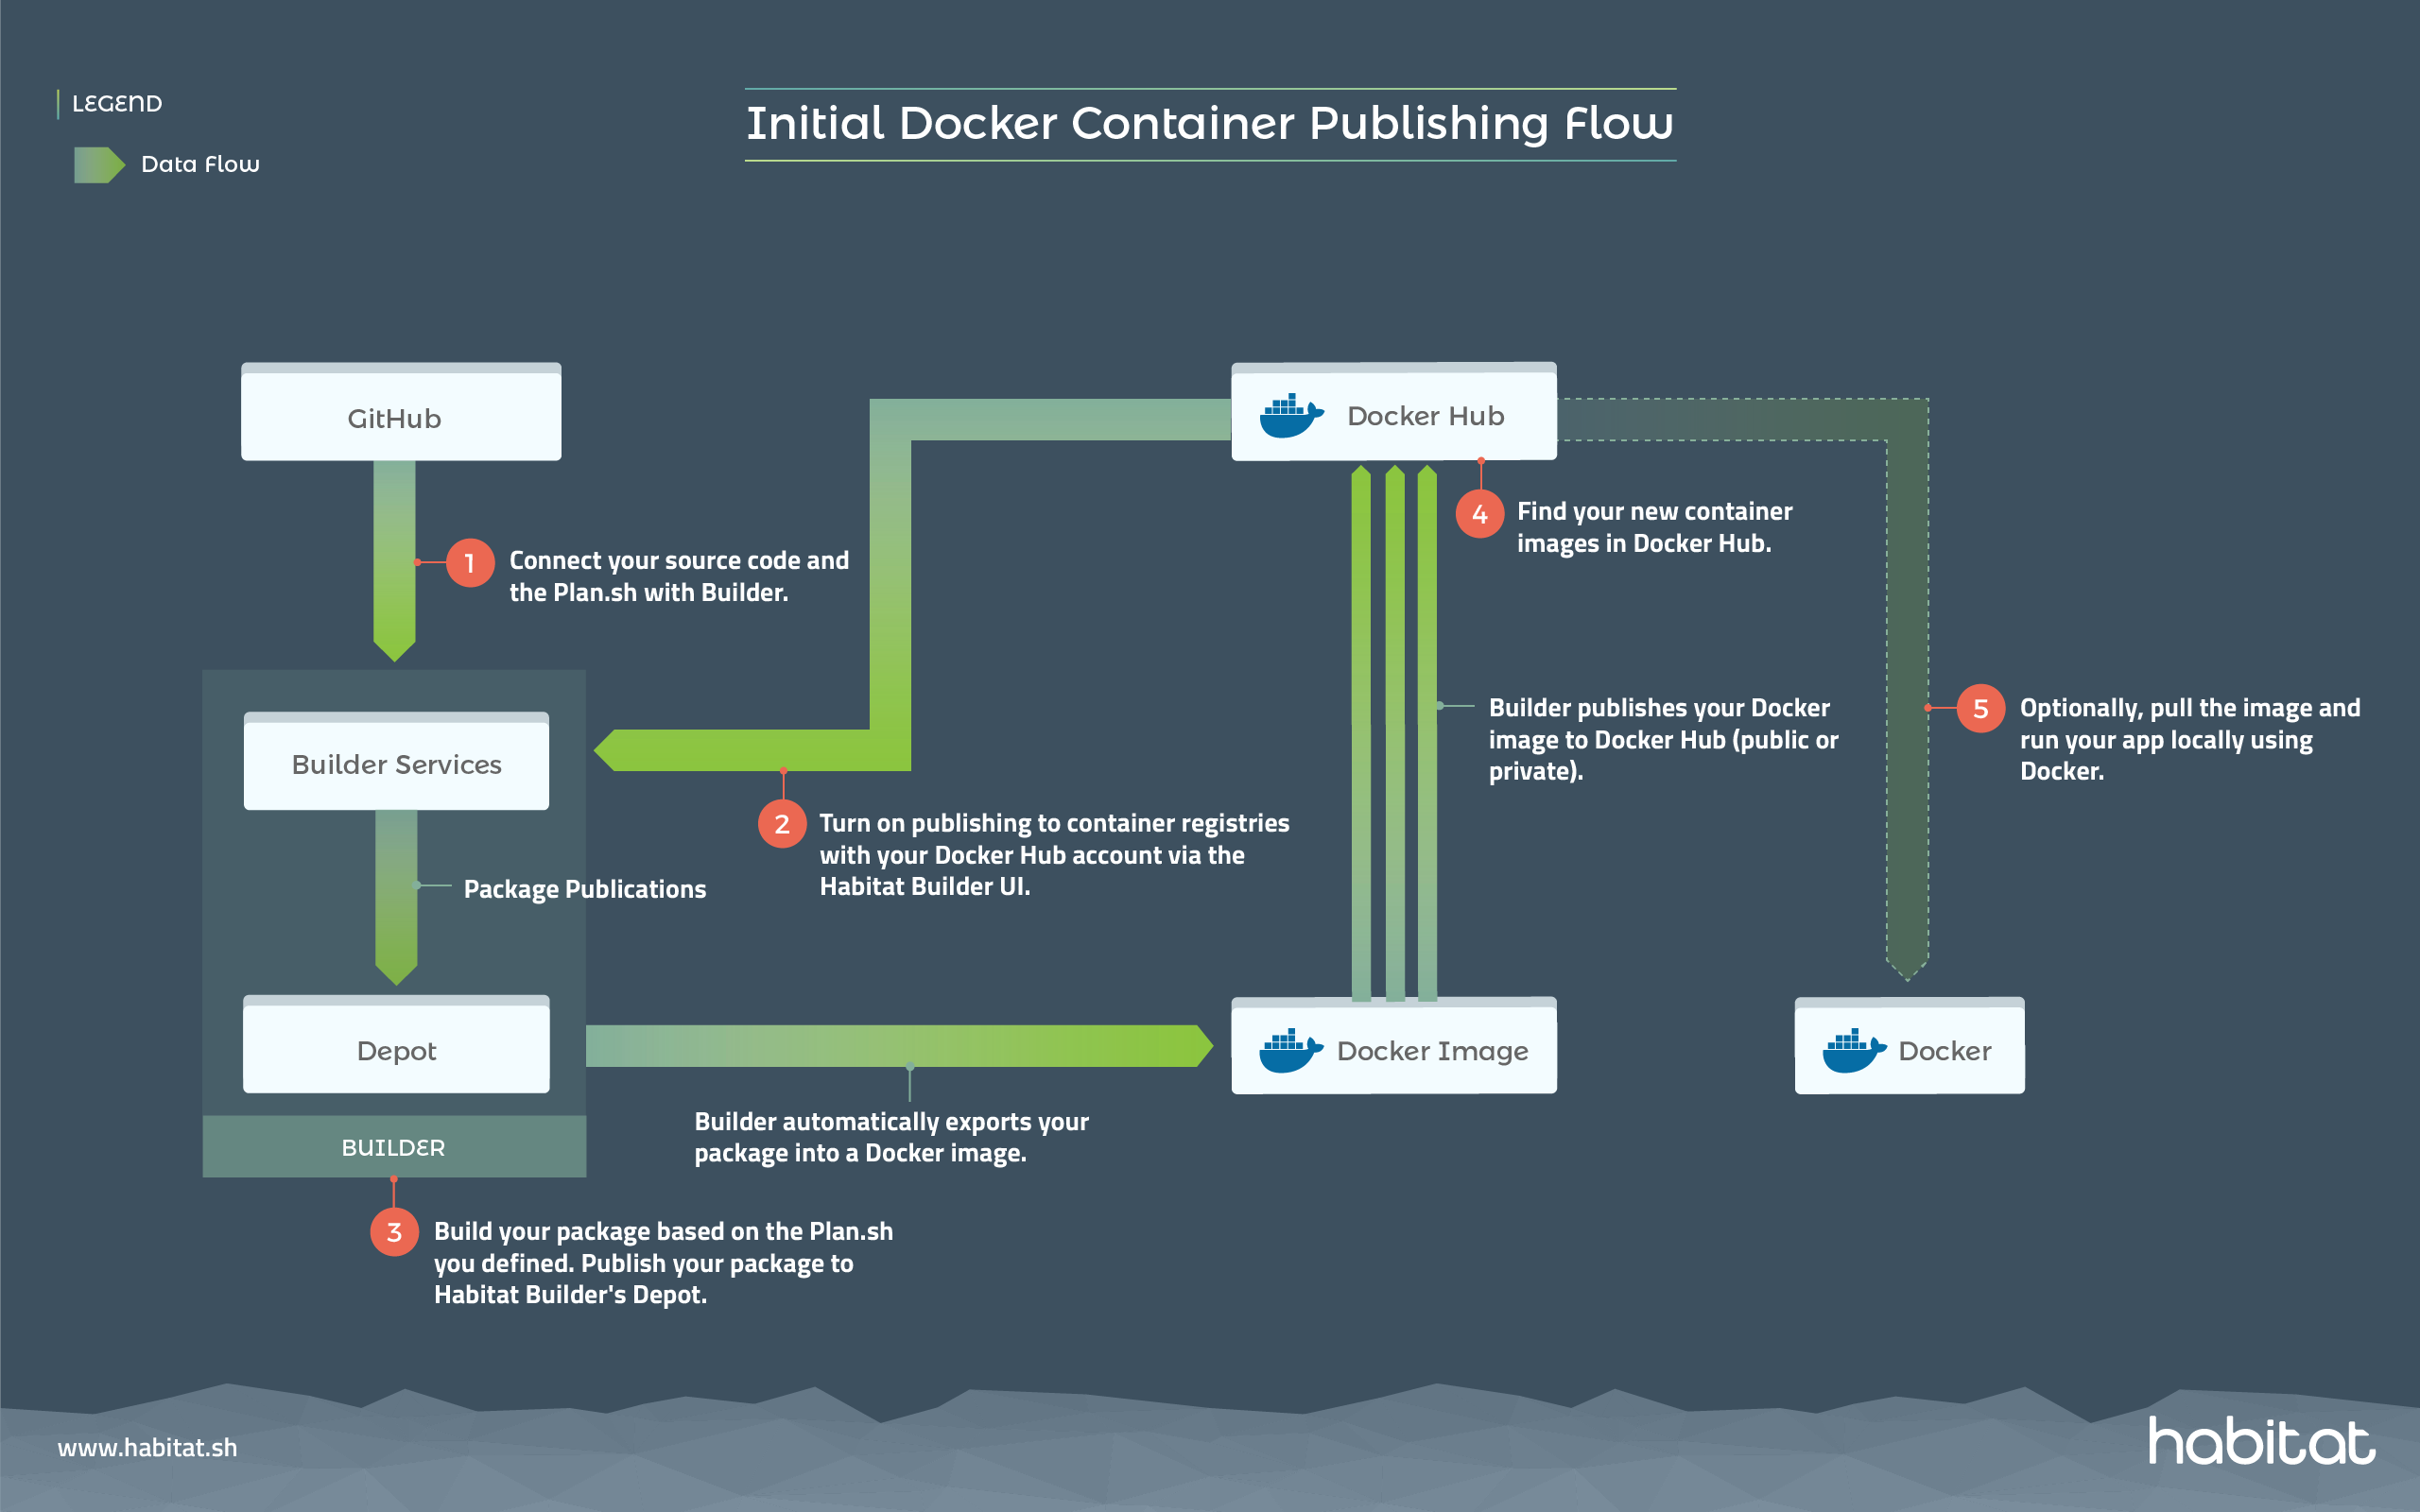 Chef Habitat Initial Docker Container Publishing Flow Diagram